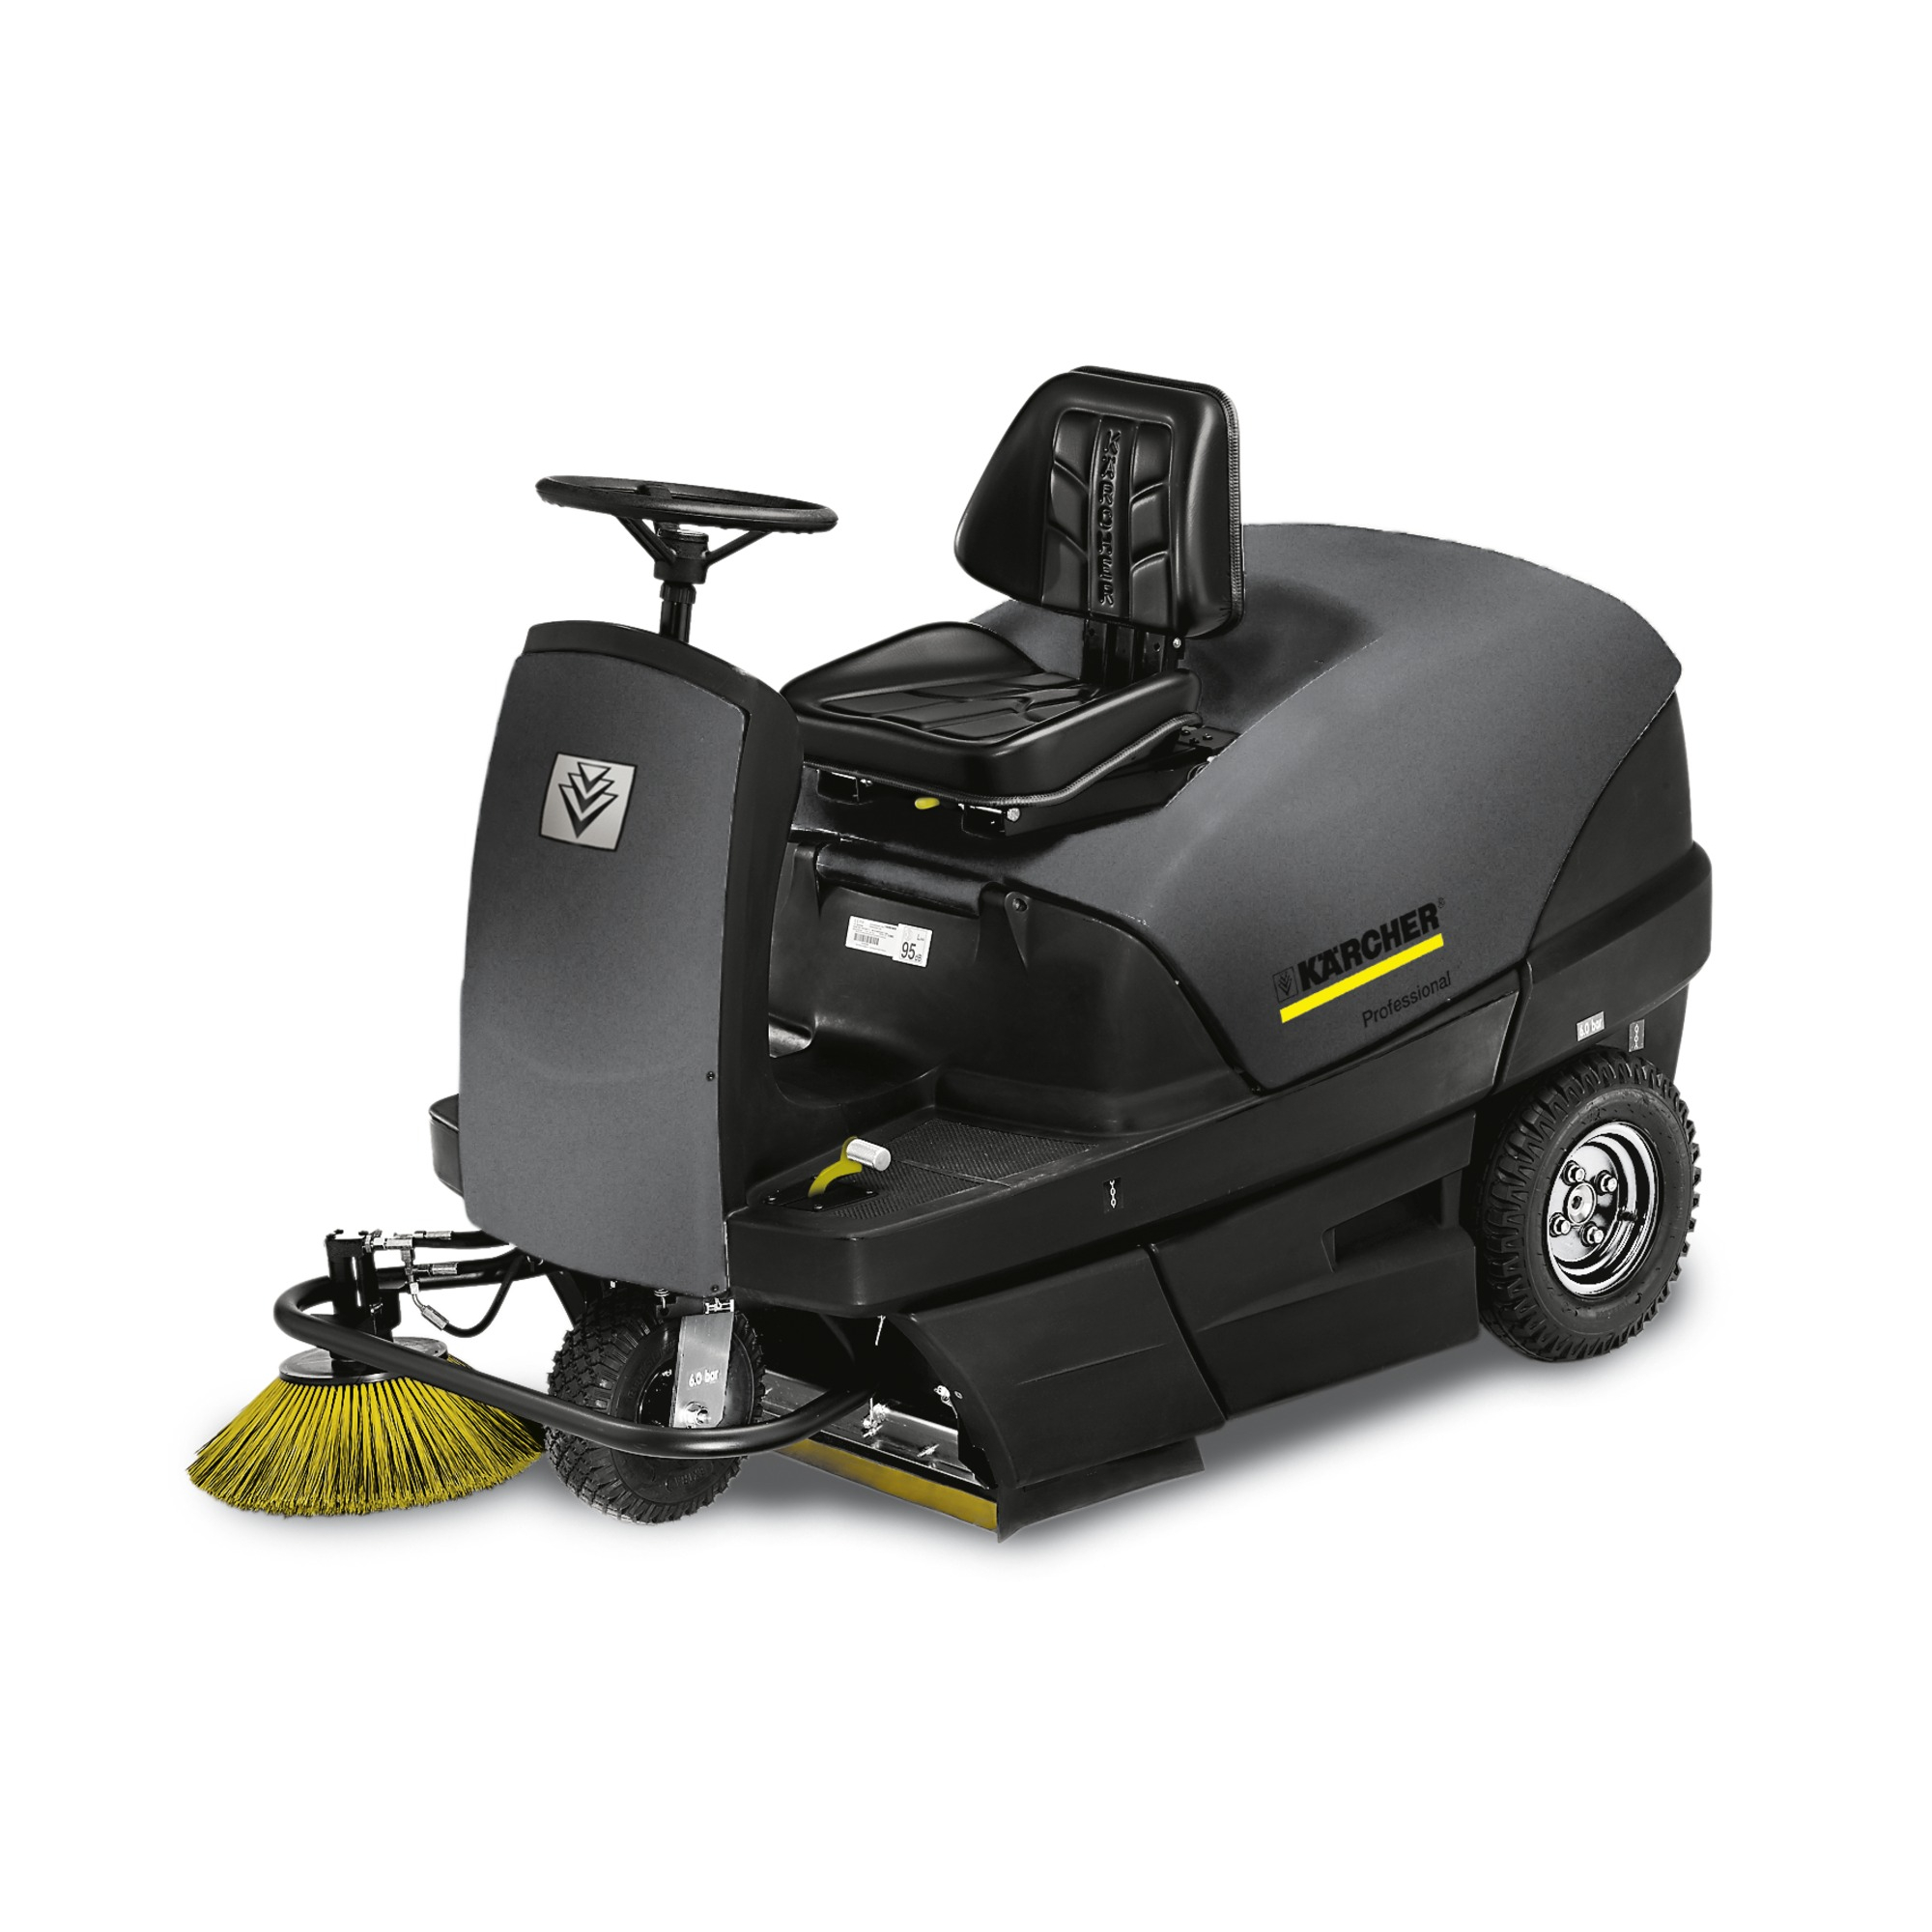 KM 100/100 R LPG 1.280-107.0 KARCHER - KARCHER PREMIER CENTER